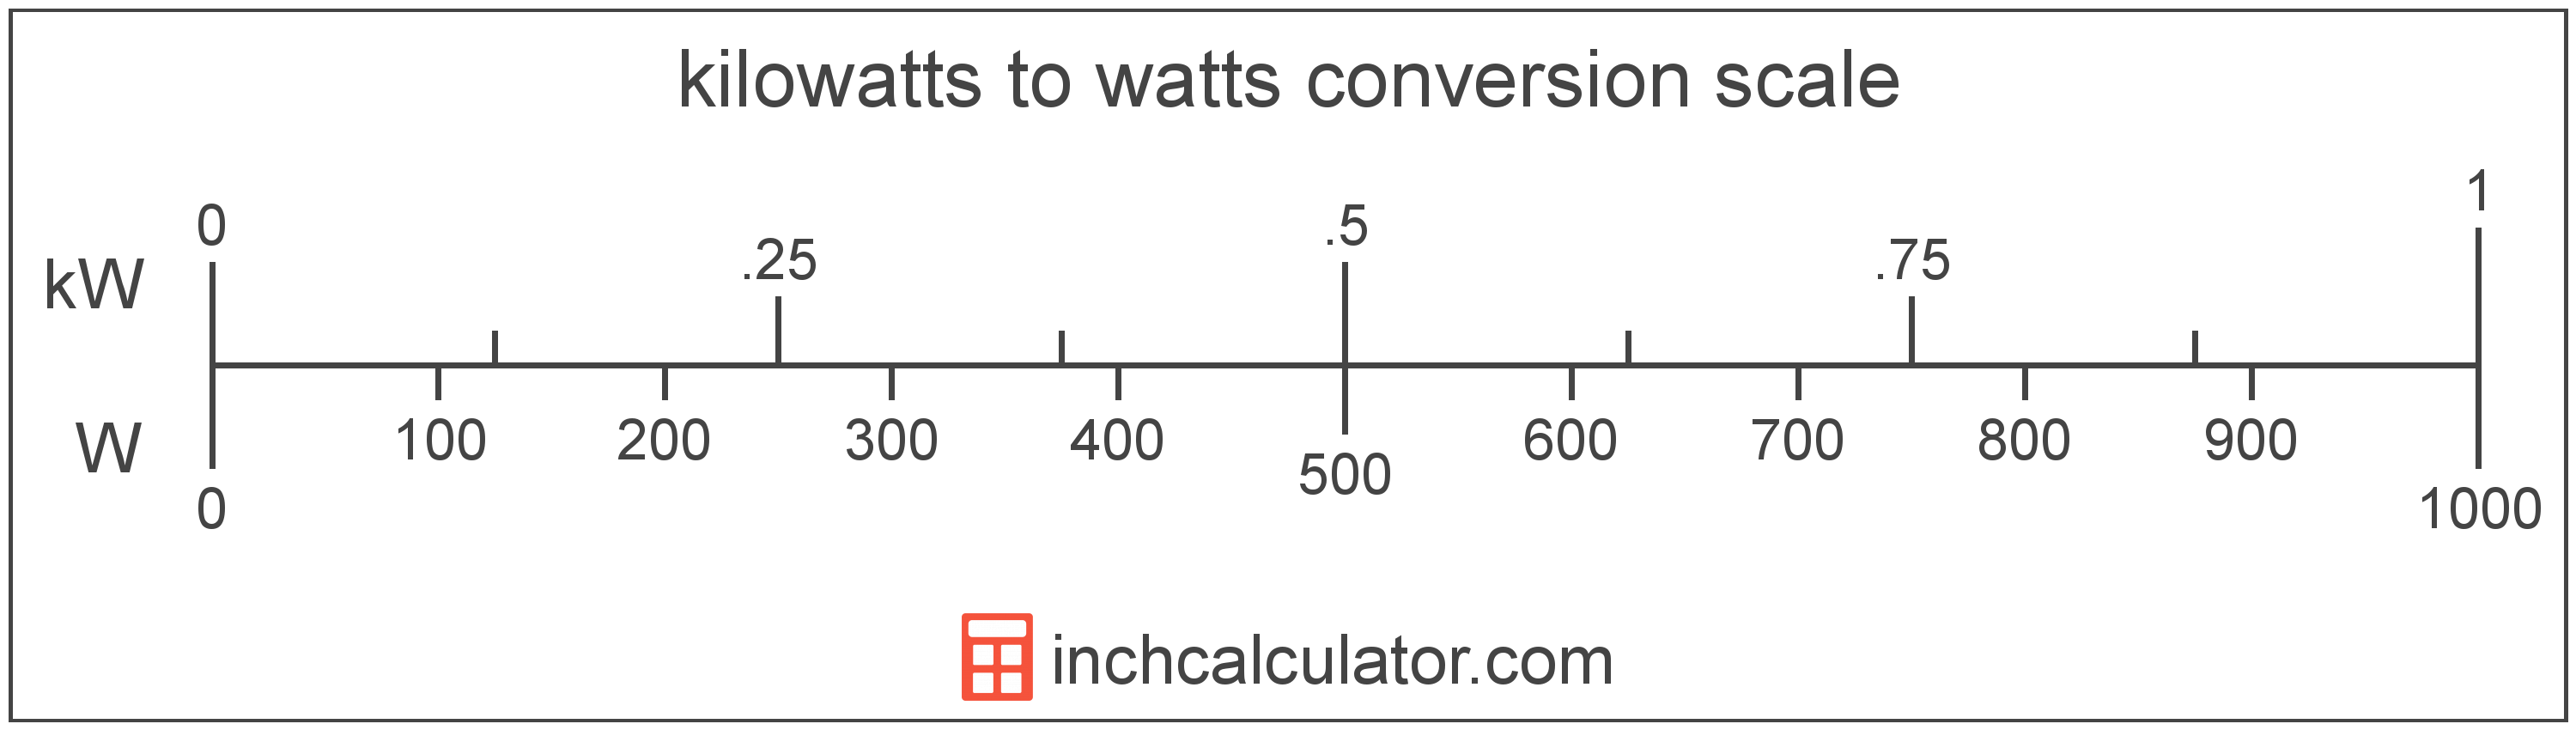 conversion scale showing kilowatts and equivalent watts power values